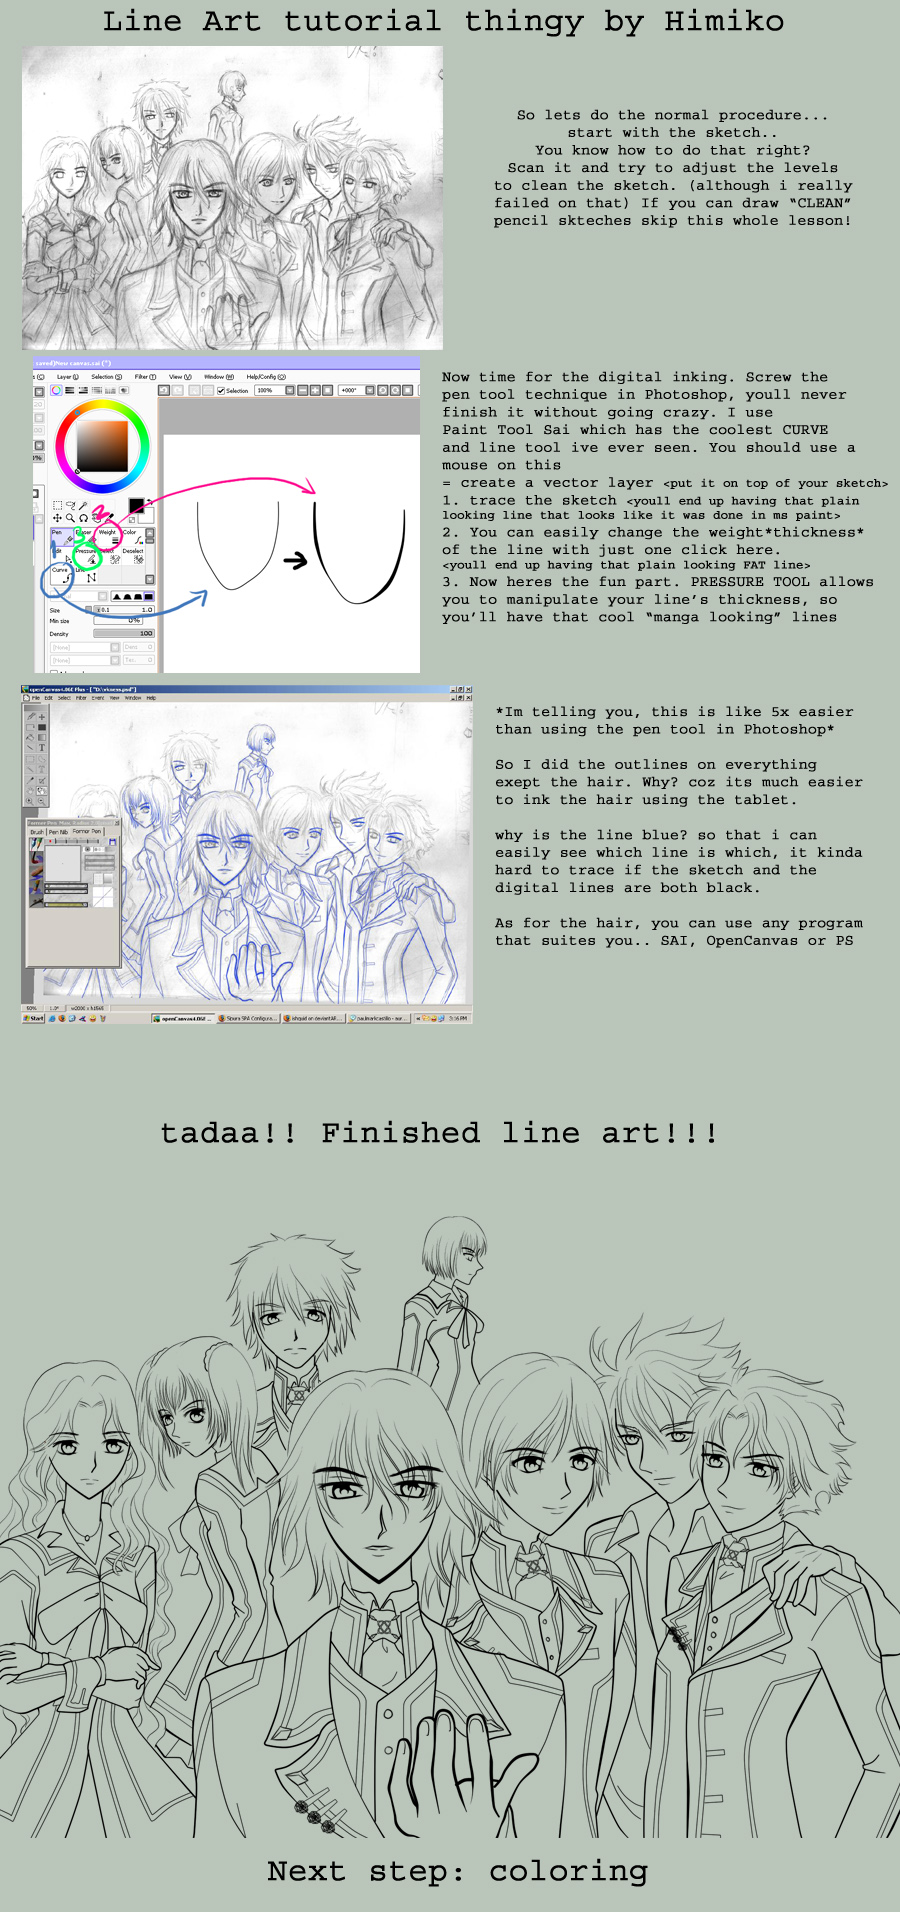 Line Art Coreldraw Tutorial : Line art tutorial in sai by himiko on deviantart